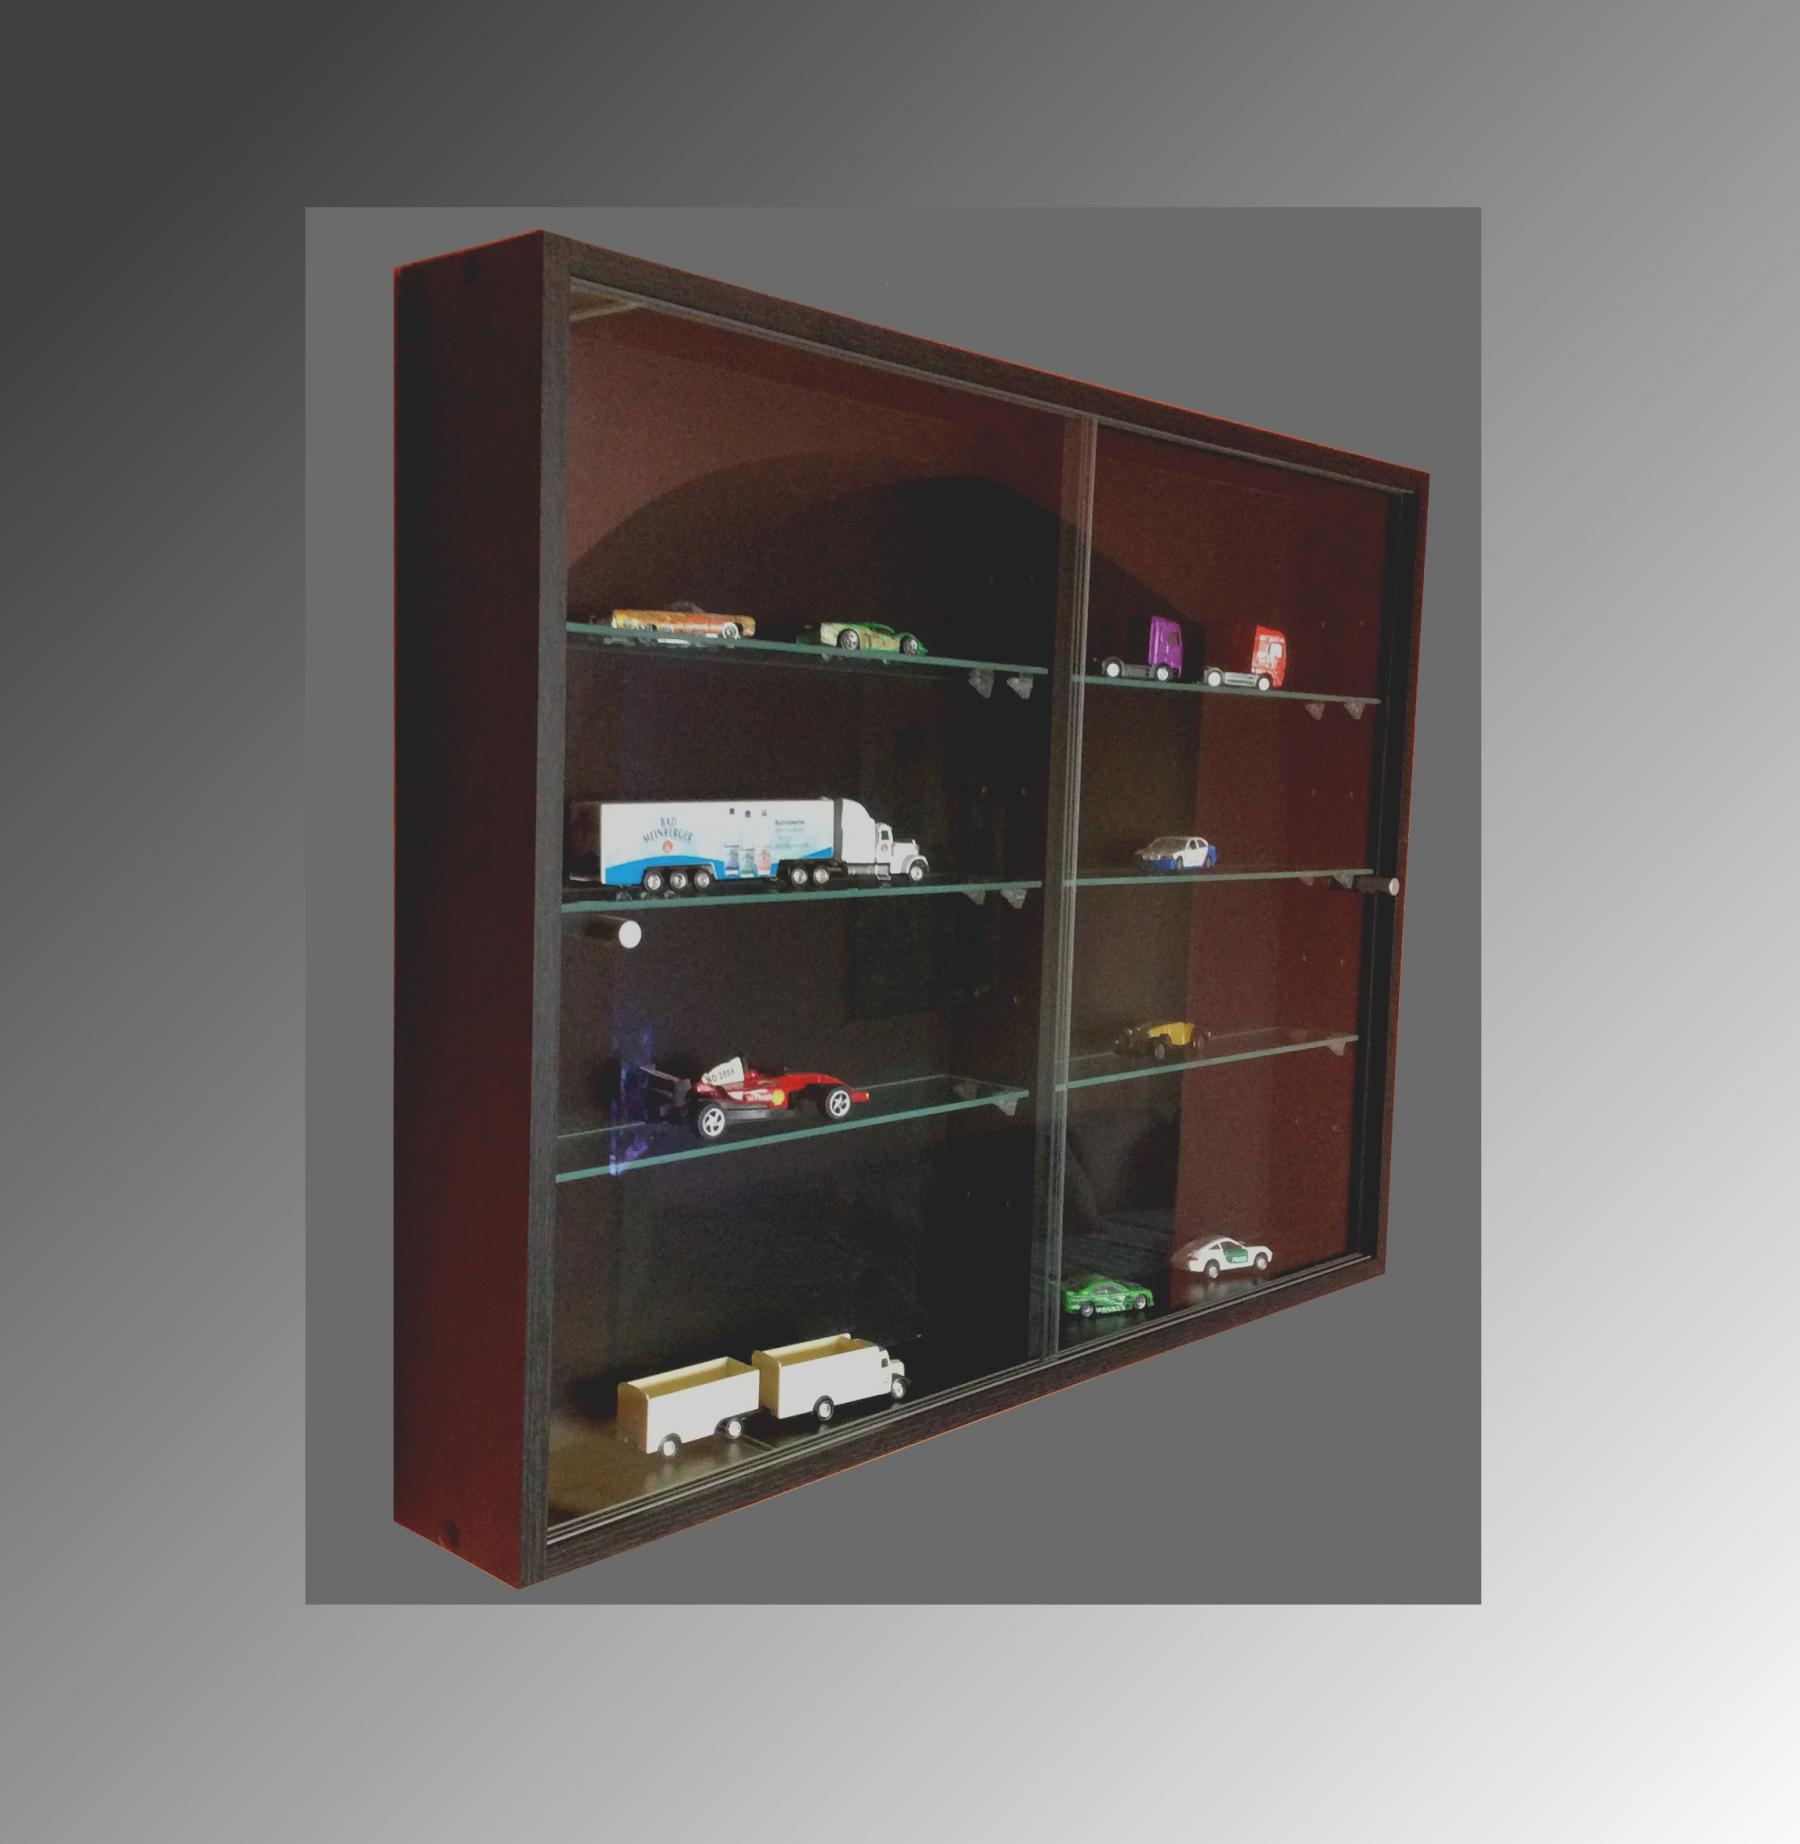 sammlervitrine glasvitrine sammelvitrine h ngevitrine vitrine schwarz 60x80x11 cm kaufen bei. Black Bedroom Furniture Sets. Home Design Ideas